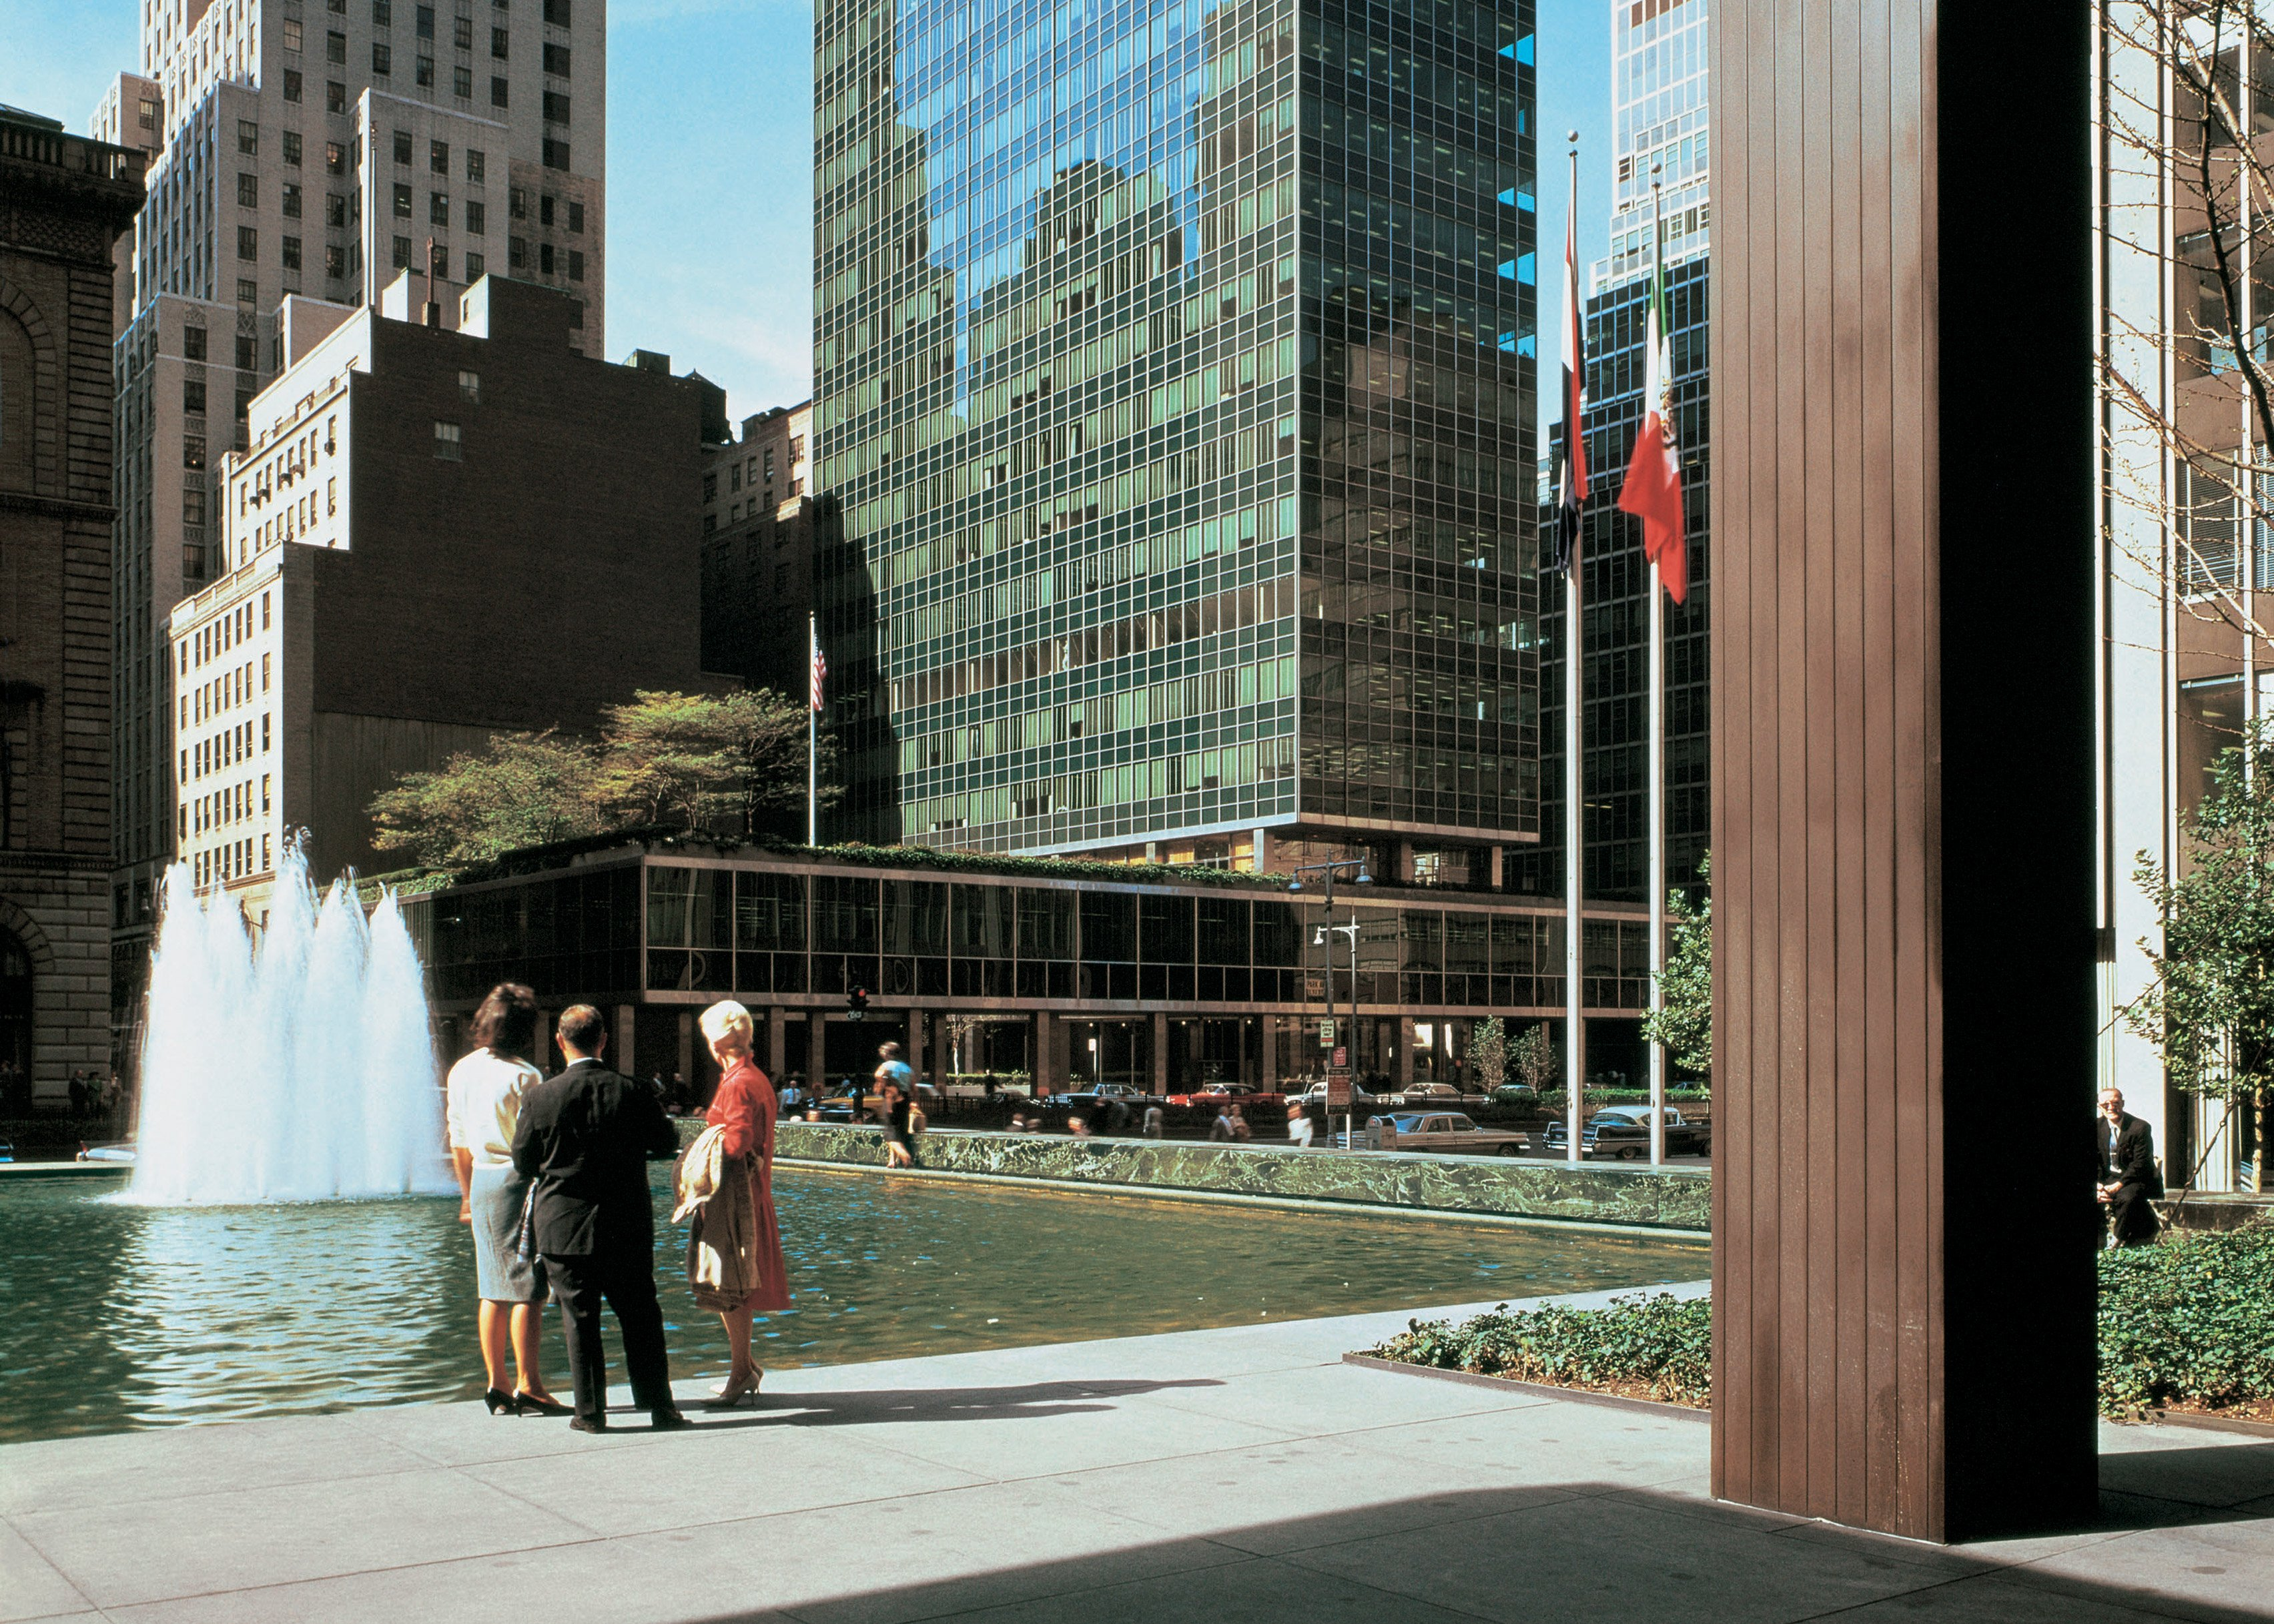 View of the Lever House by Gordon Bunshaft of Skidmore, Owings & Merrill, New York City, New York, photographed in 1959